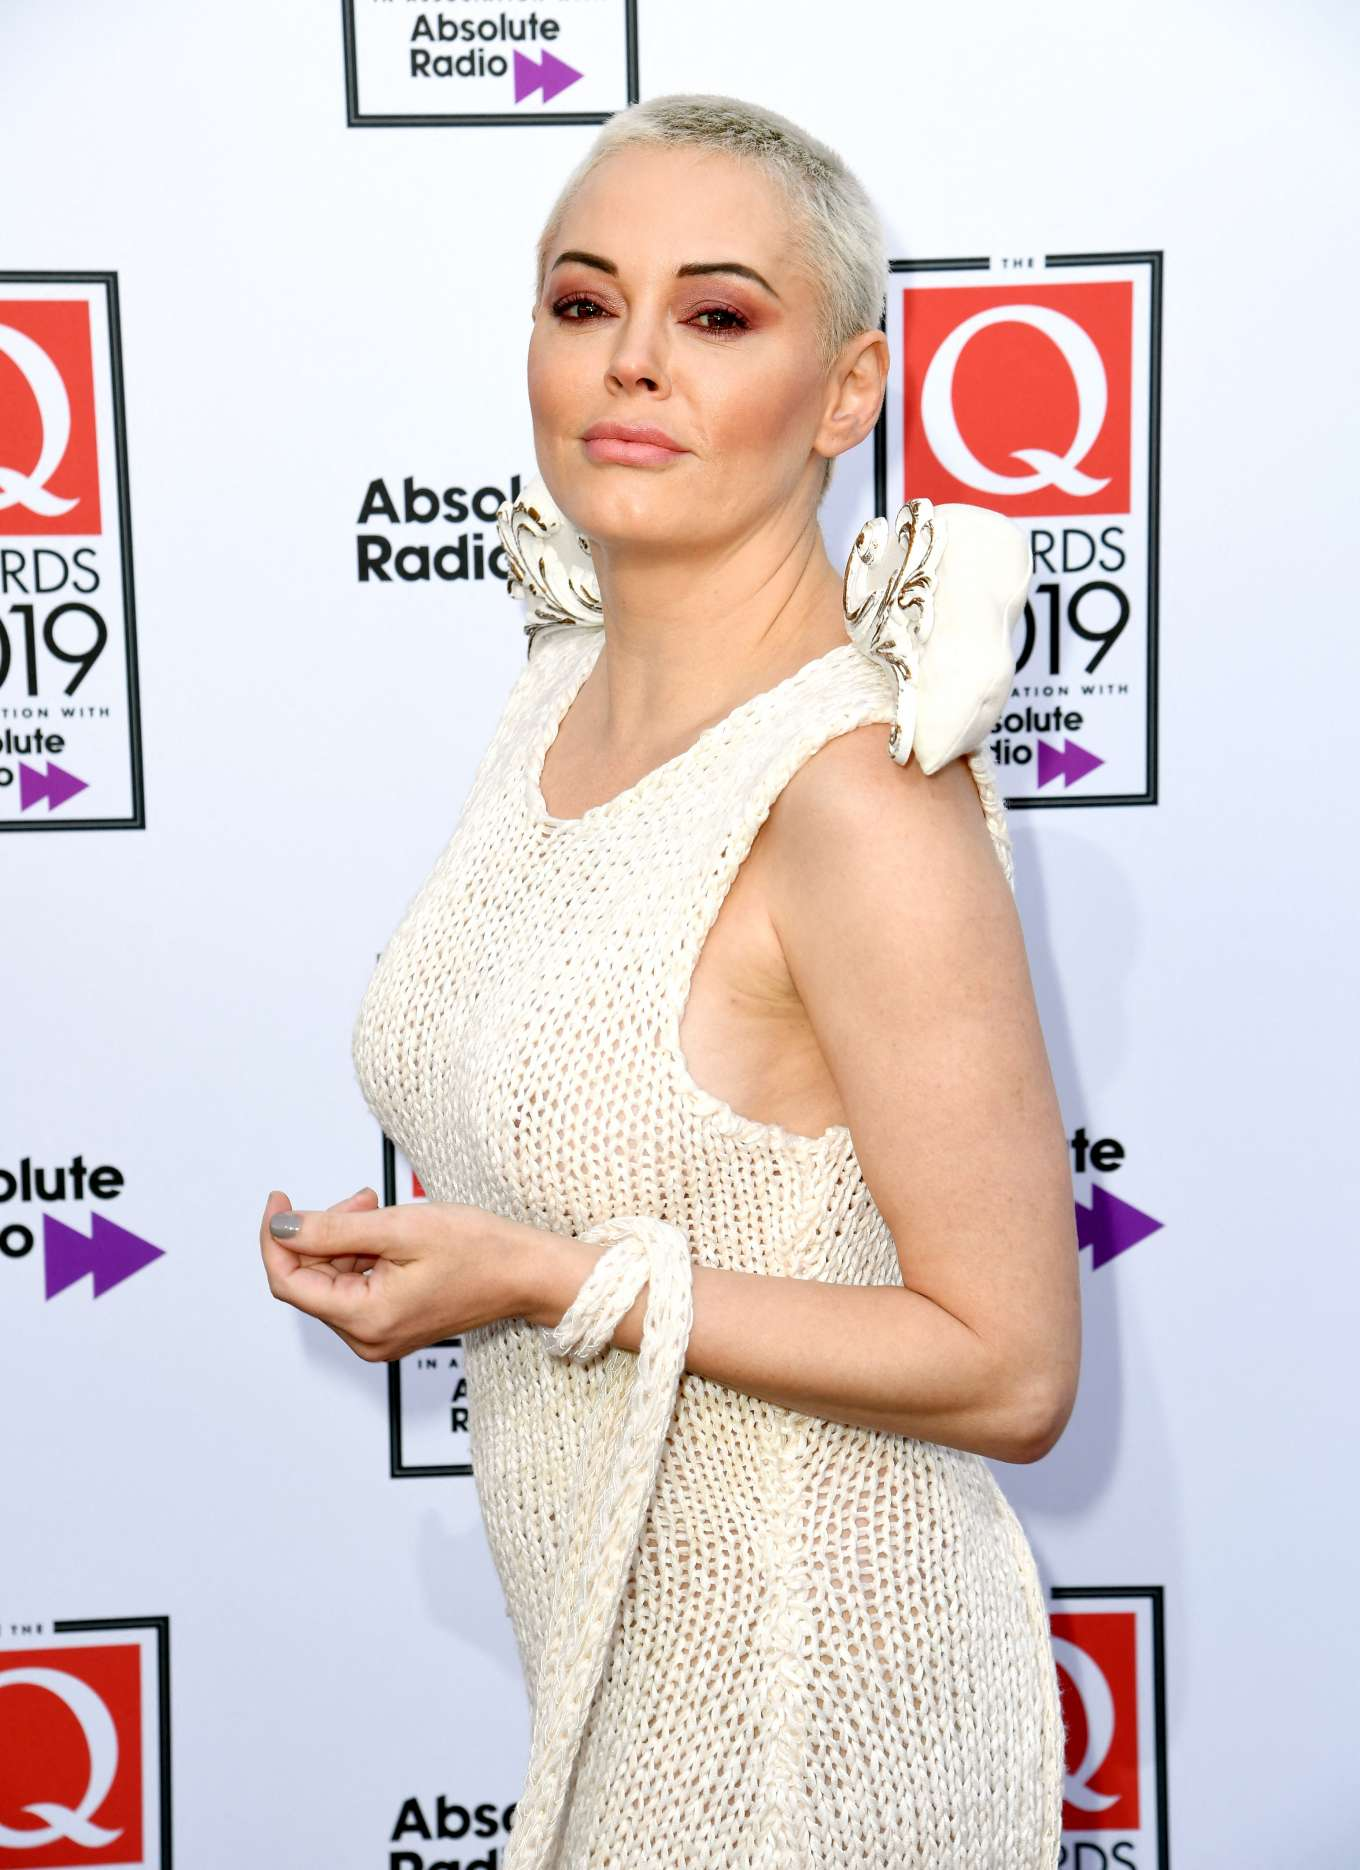 Rose McGowan - The Q Awards 2019 at The Roundhouse in London